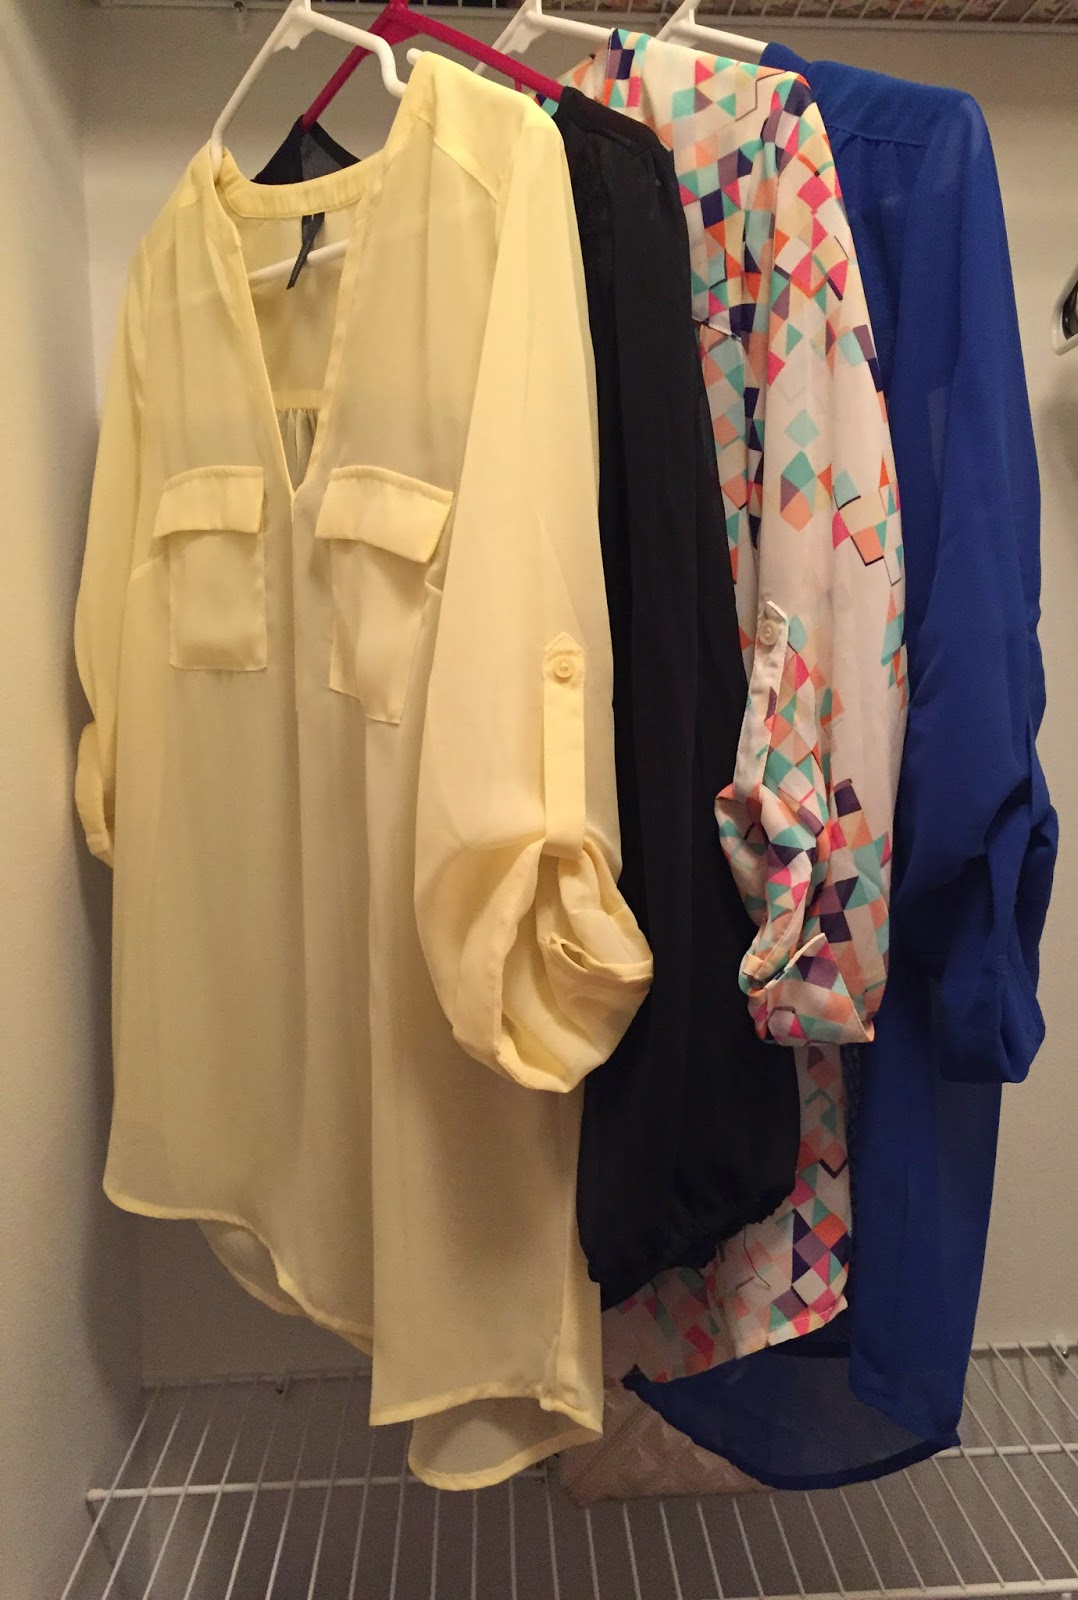 How to get rid of wrinkles in clothes in less than 5 minutes